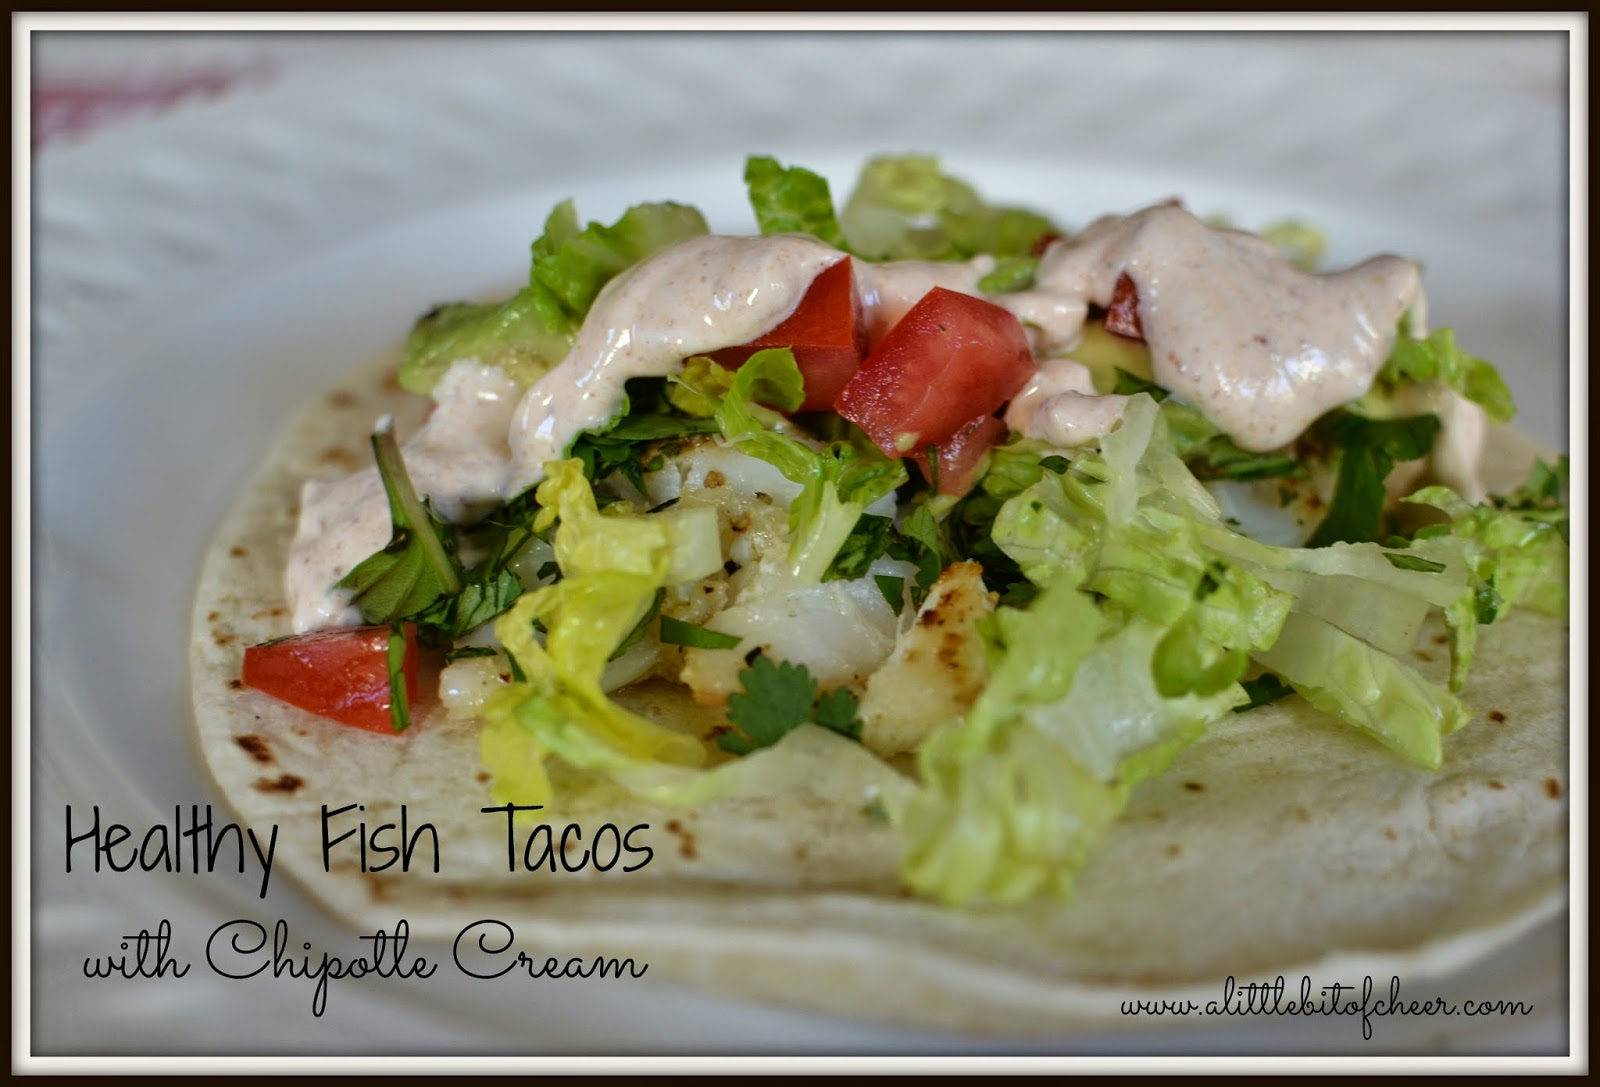 Healthy Fish Tacos with Chipotle Cream Recipe